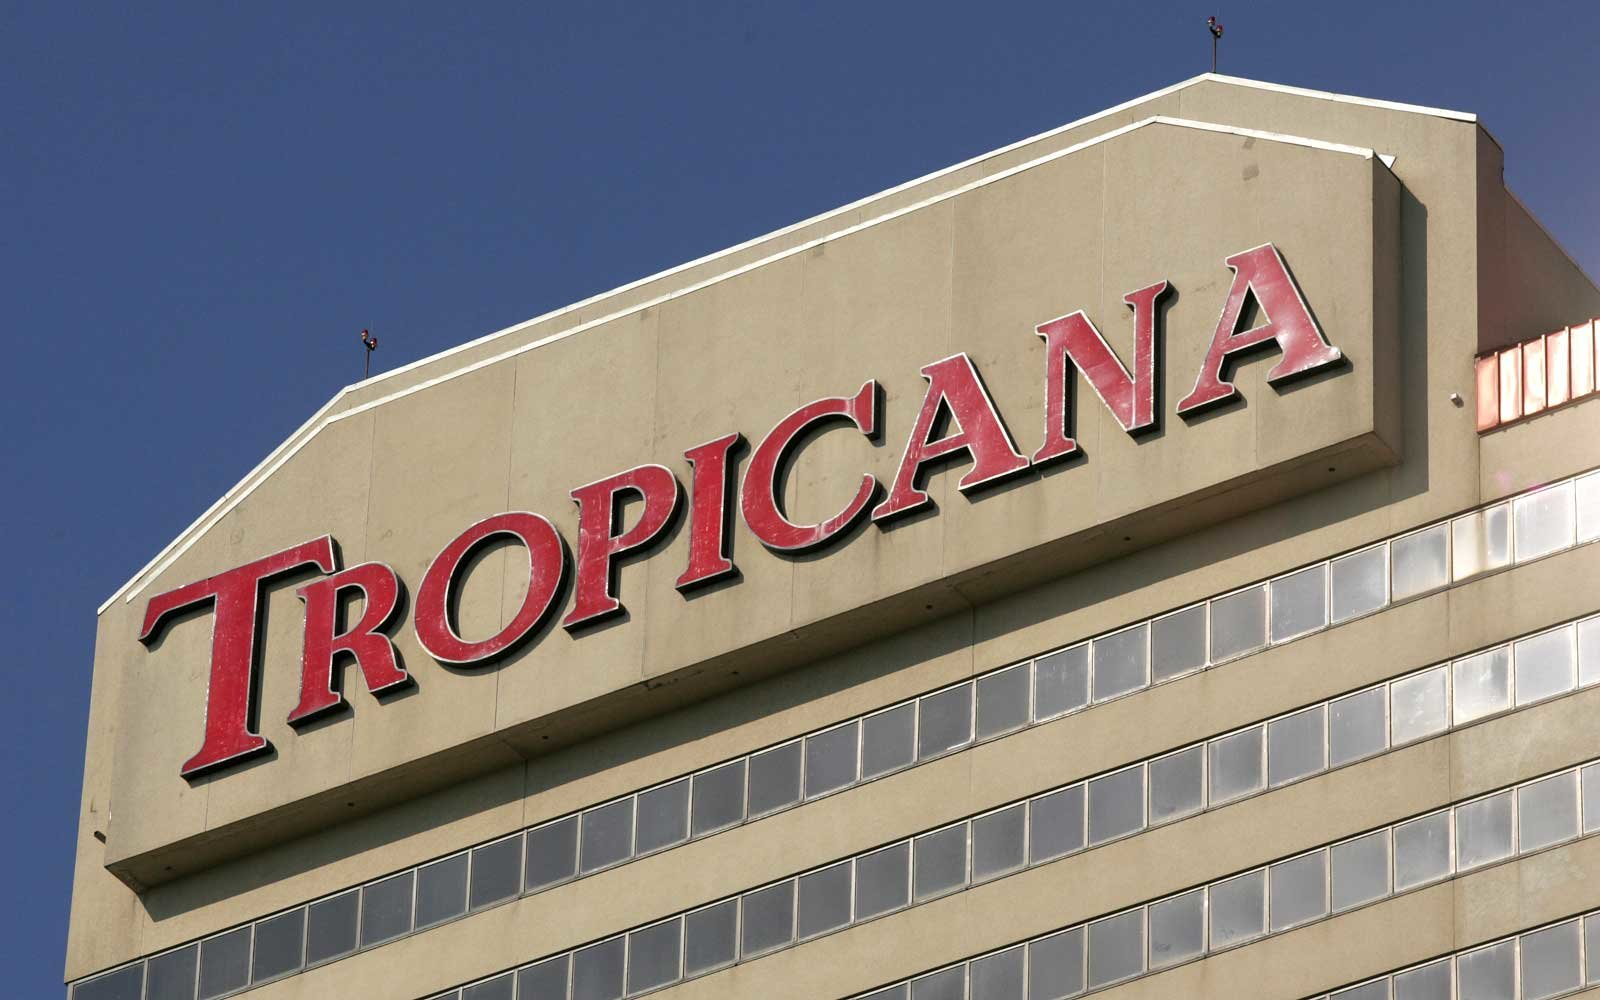 The Tropicana Casino and Resort in Atlantic City